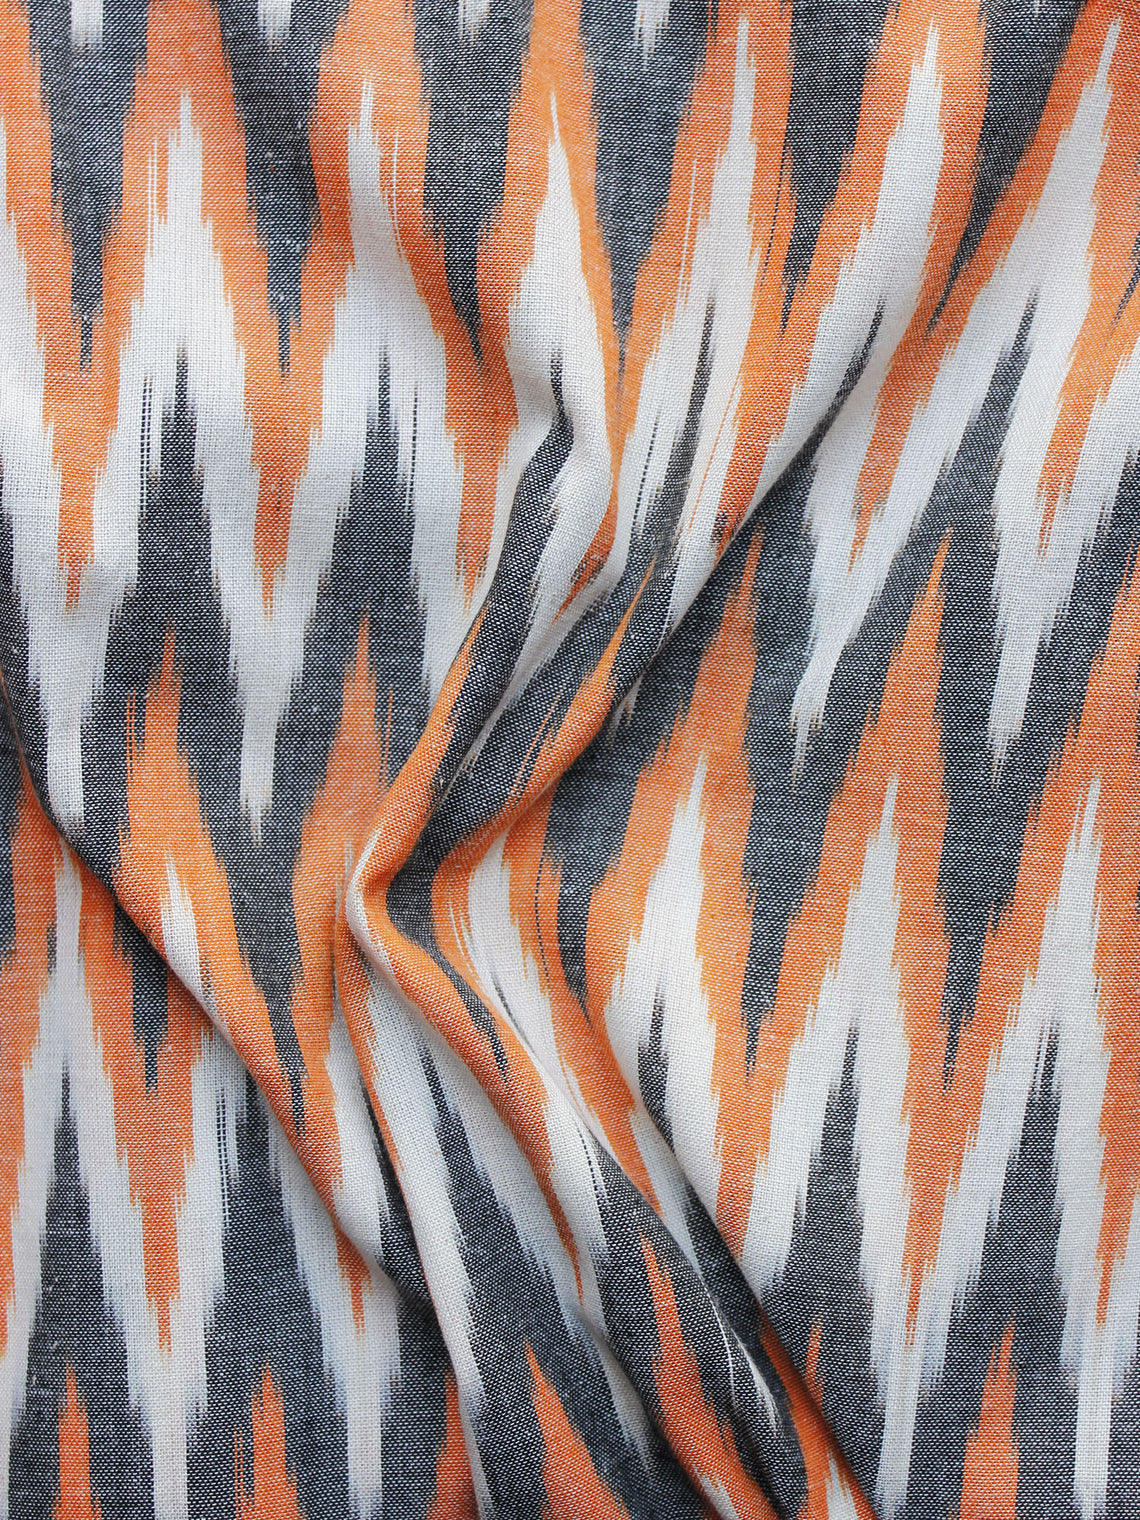 Orange Grey White Pochampally Hand Weaved Ikat Fabric Per Meter - F003F1227